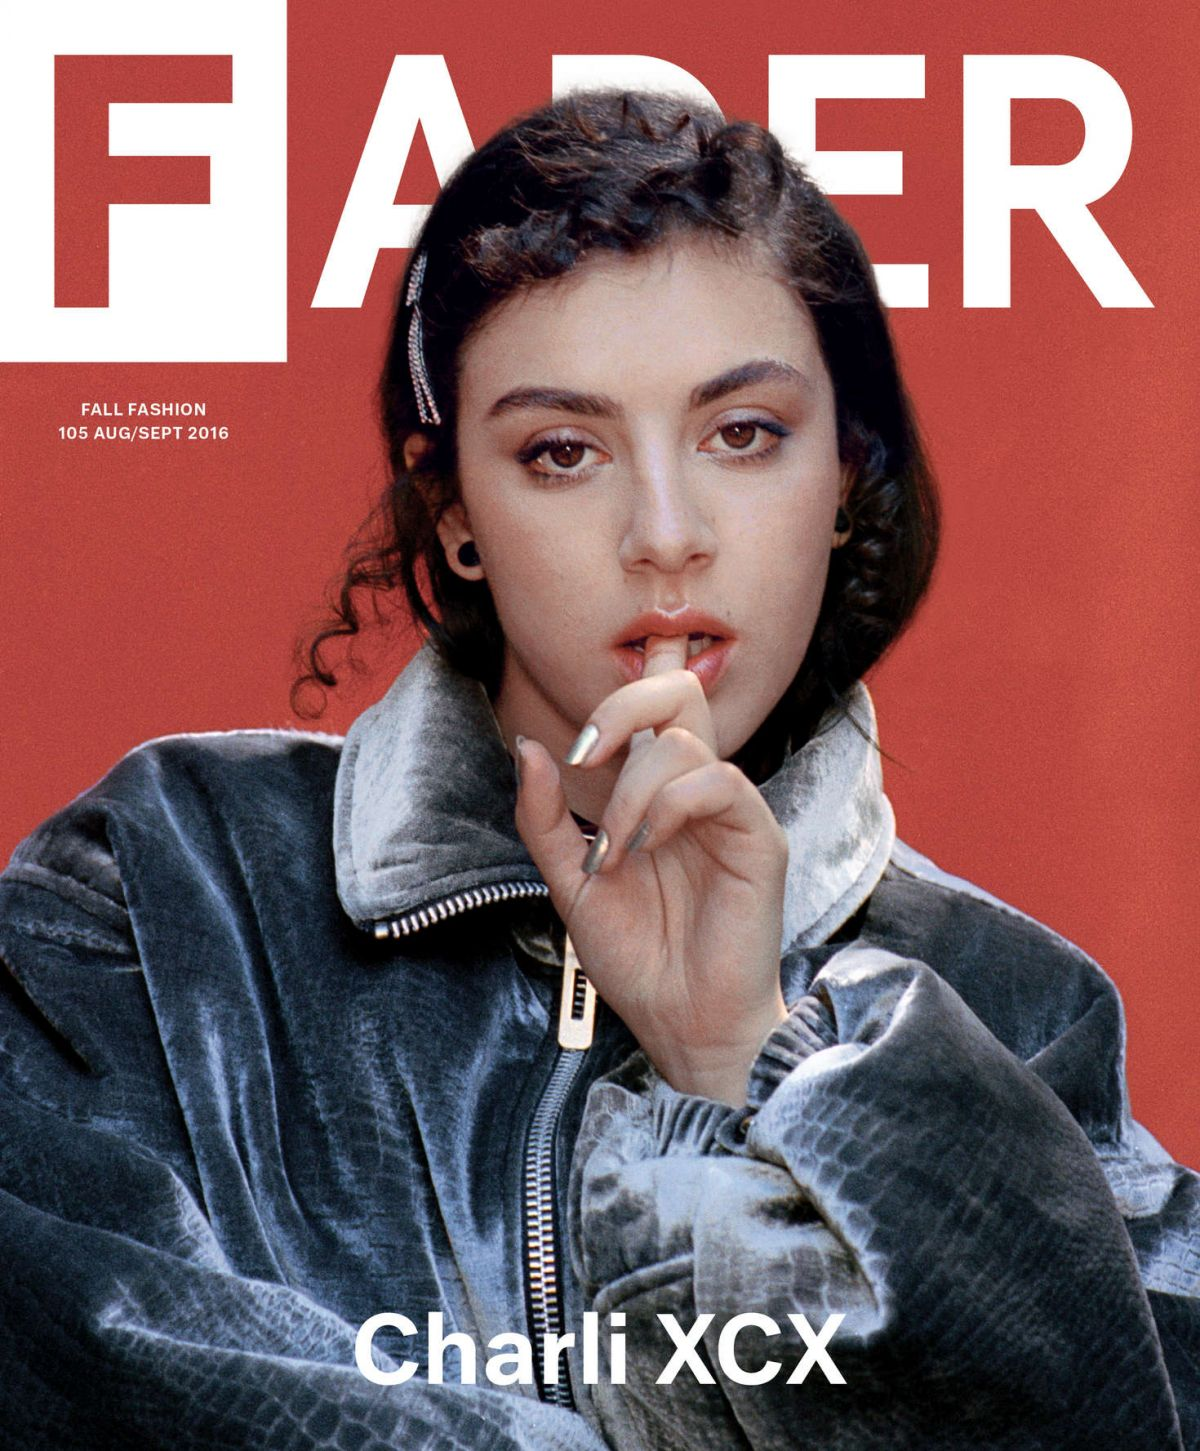 CHARLI XCX in Fader Magazine, August/September 2016 Issue